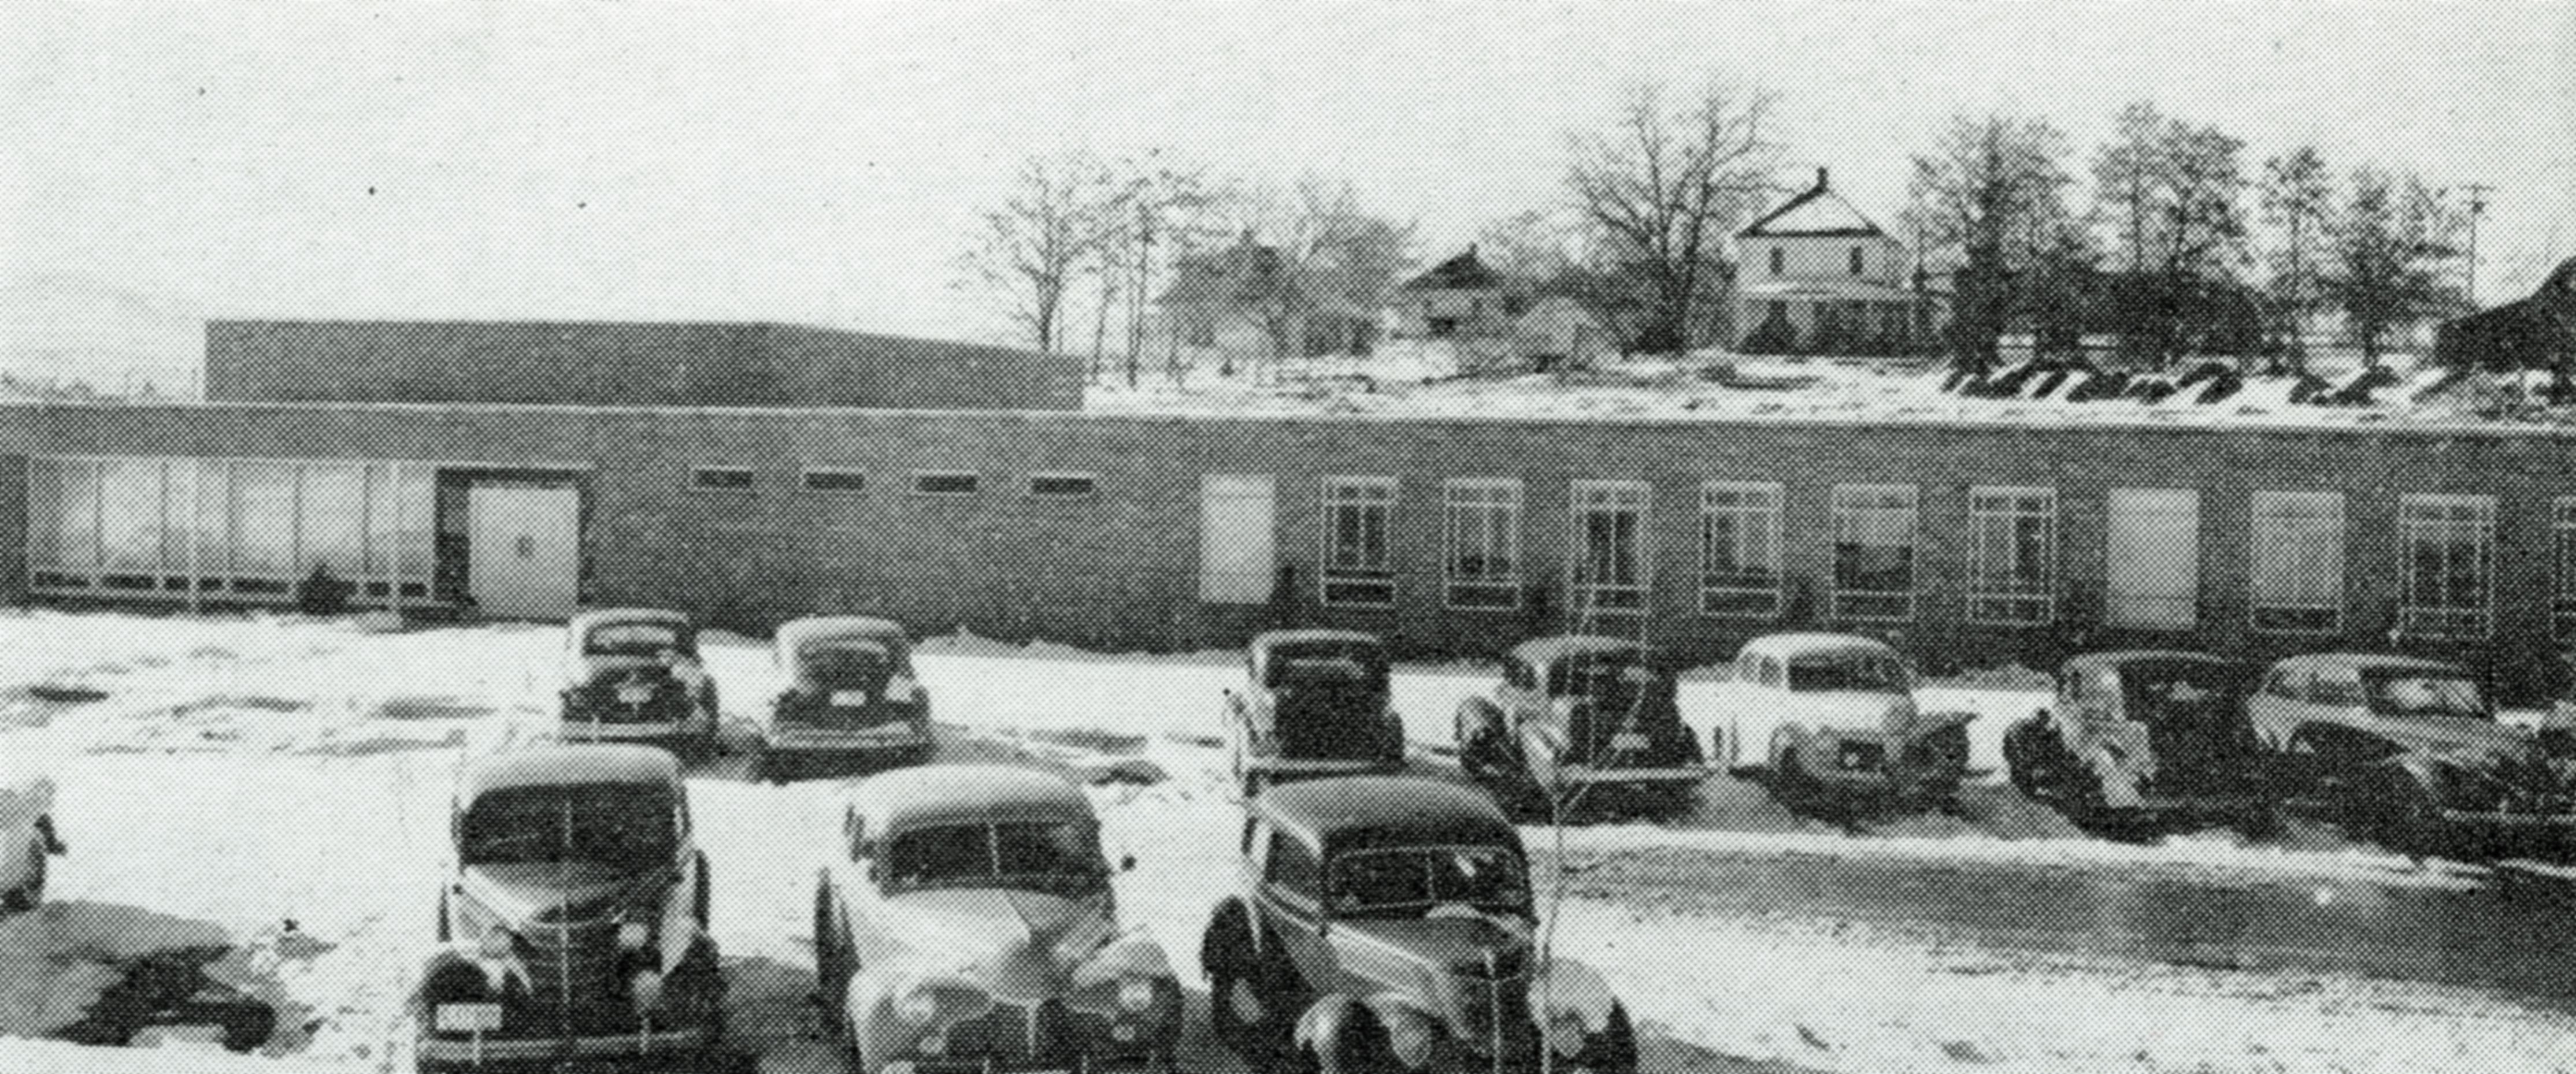 The Rowles Music Building 1950